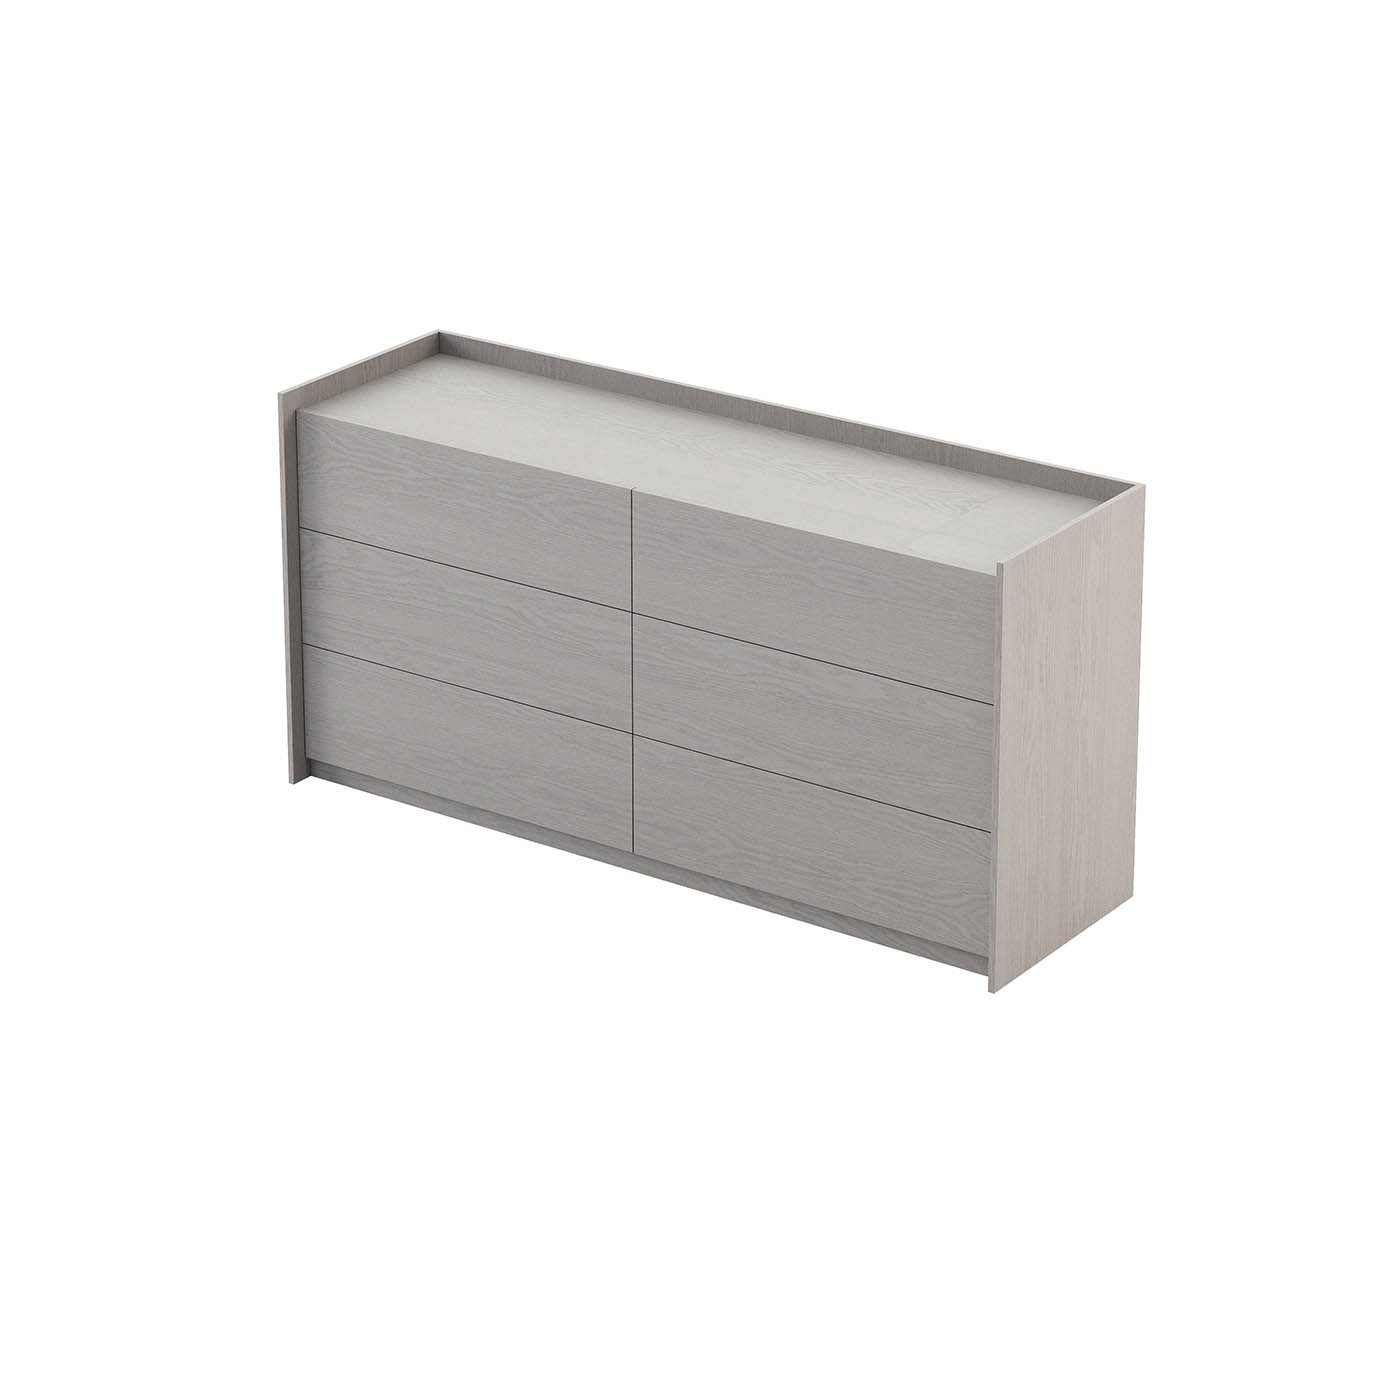 Endy Chest of Drawers